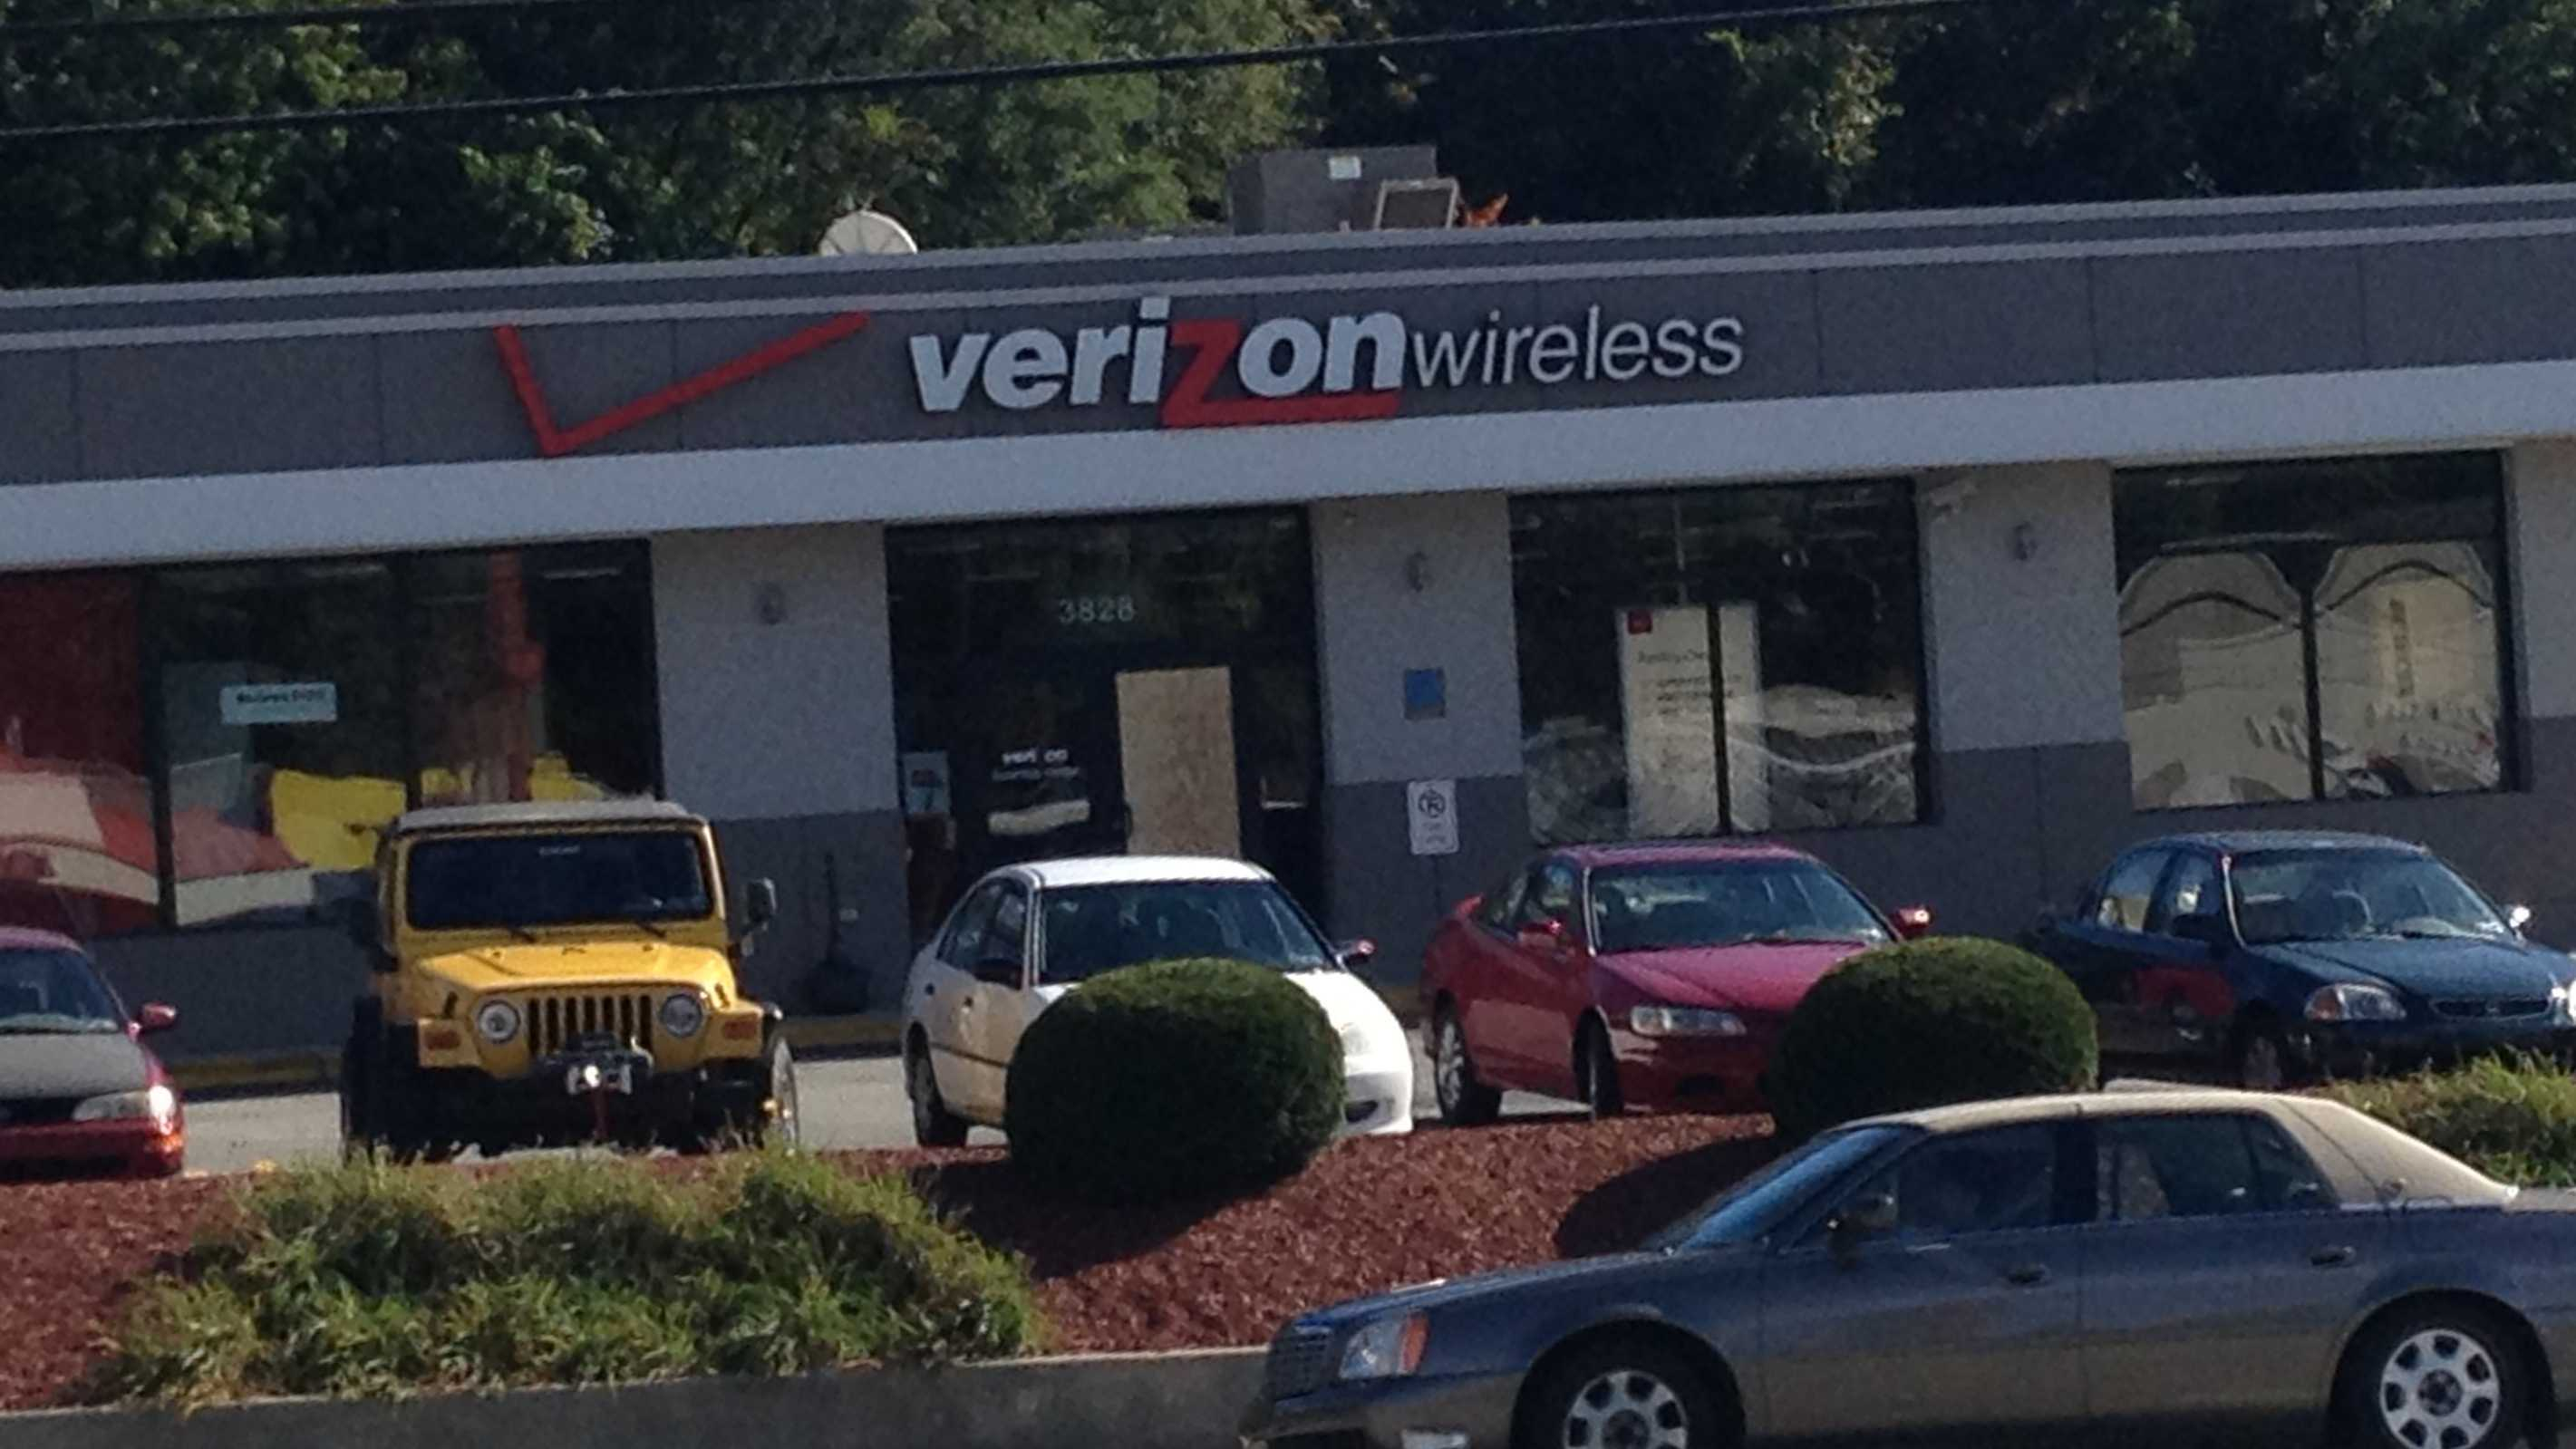 Verizon Wireless store in Monroeville